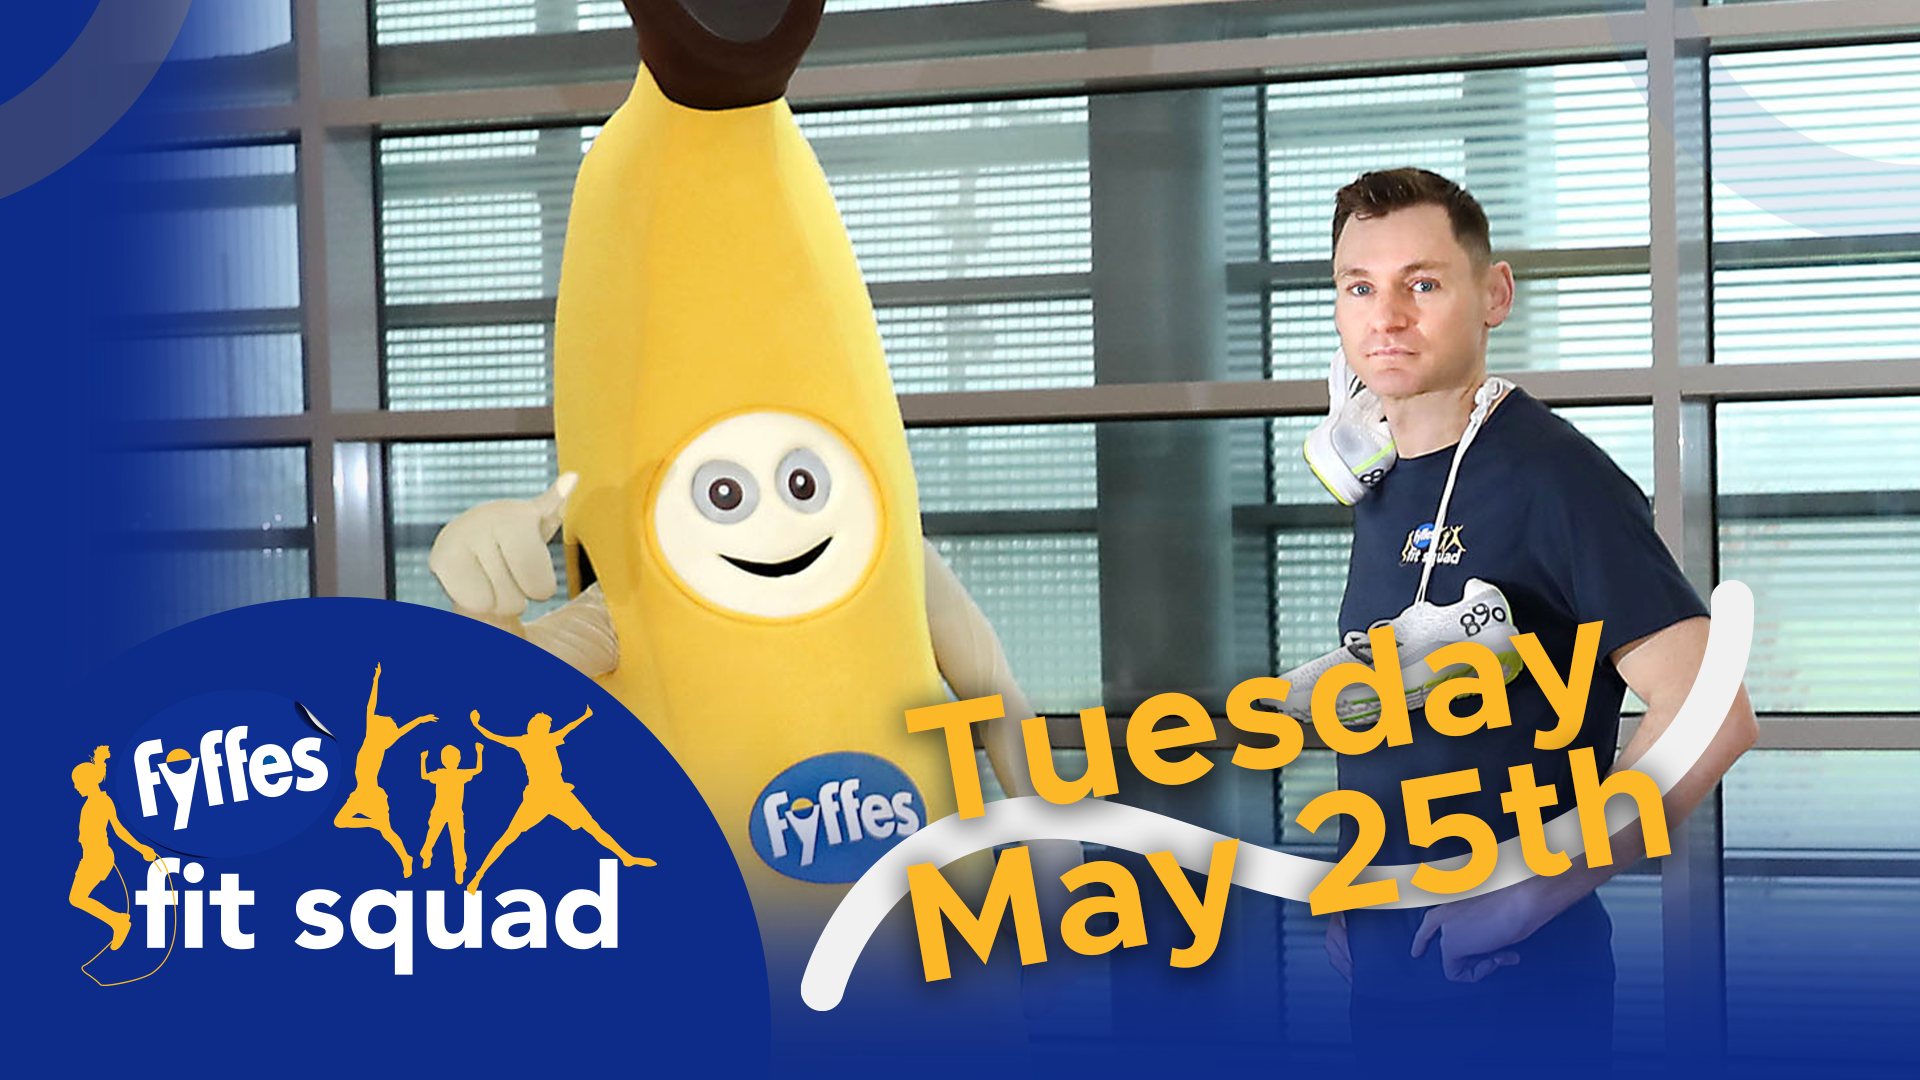 Fyffes Fit Squad Week 10 | Tuesday, May 25th 2021